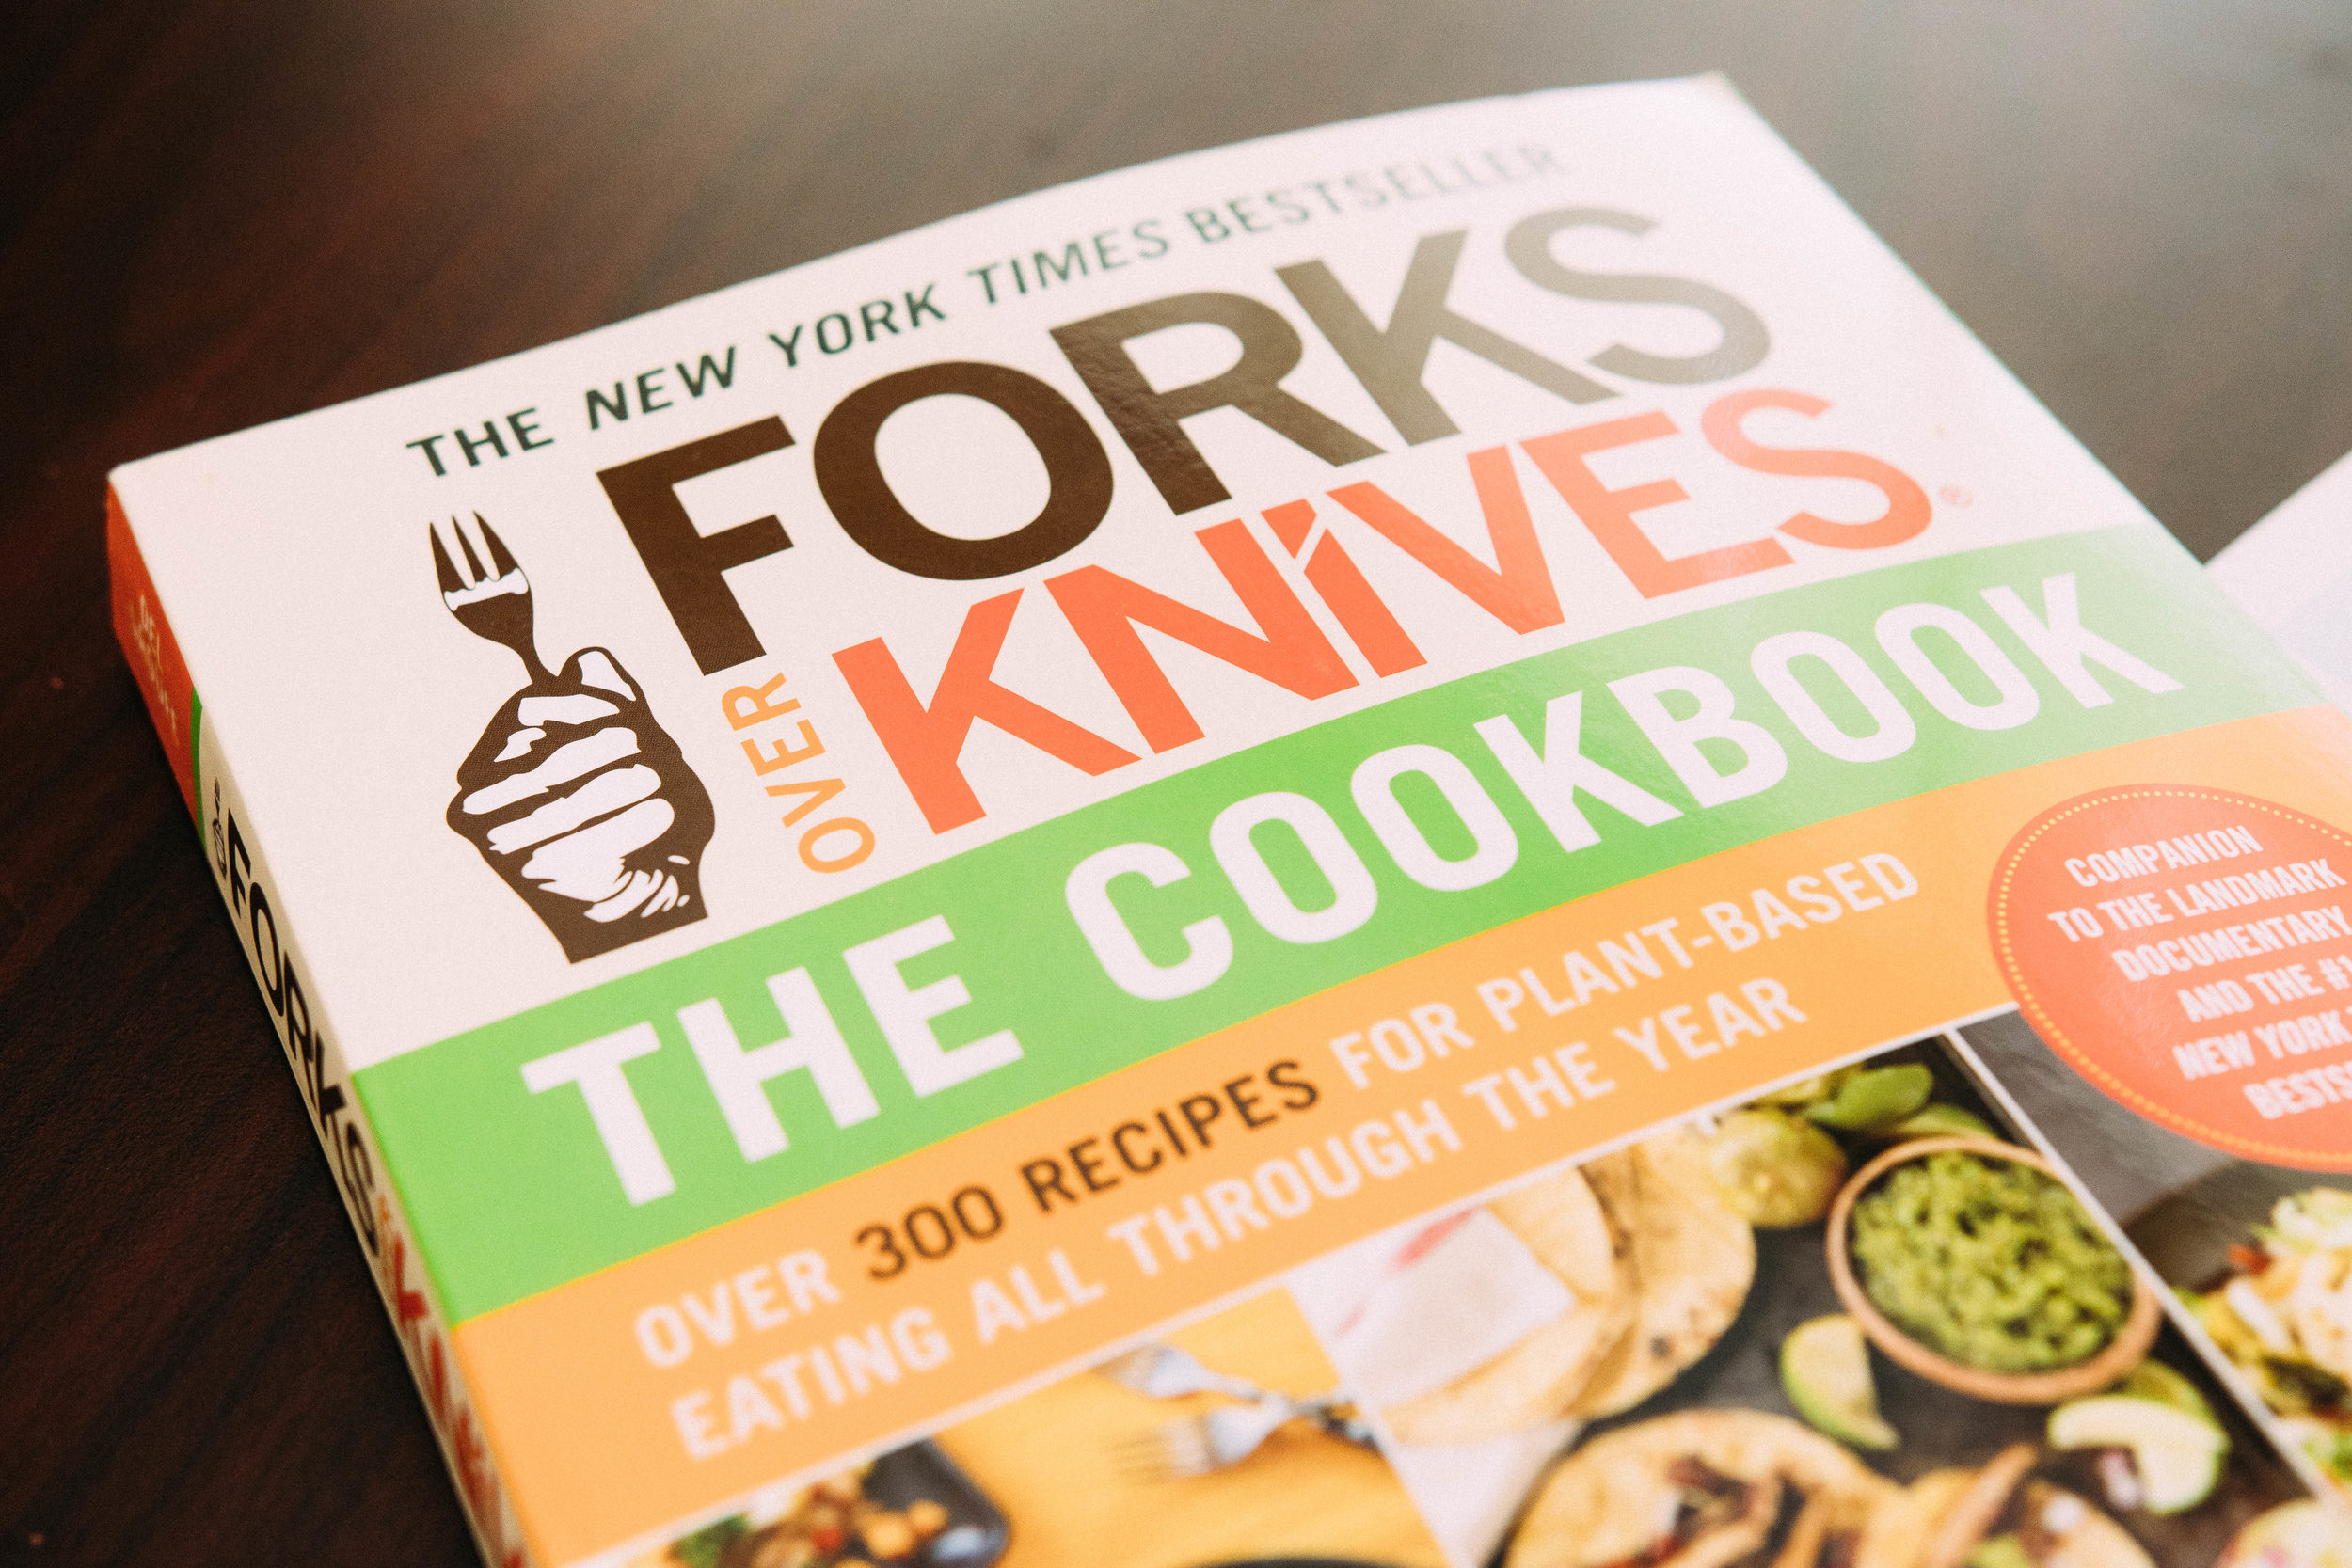 Dr. Barnard contributes to the  Forks Over Knives  series